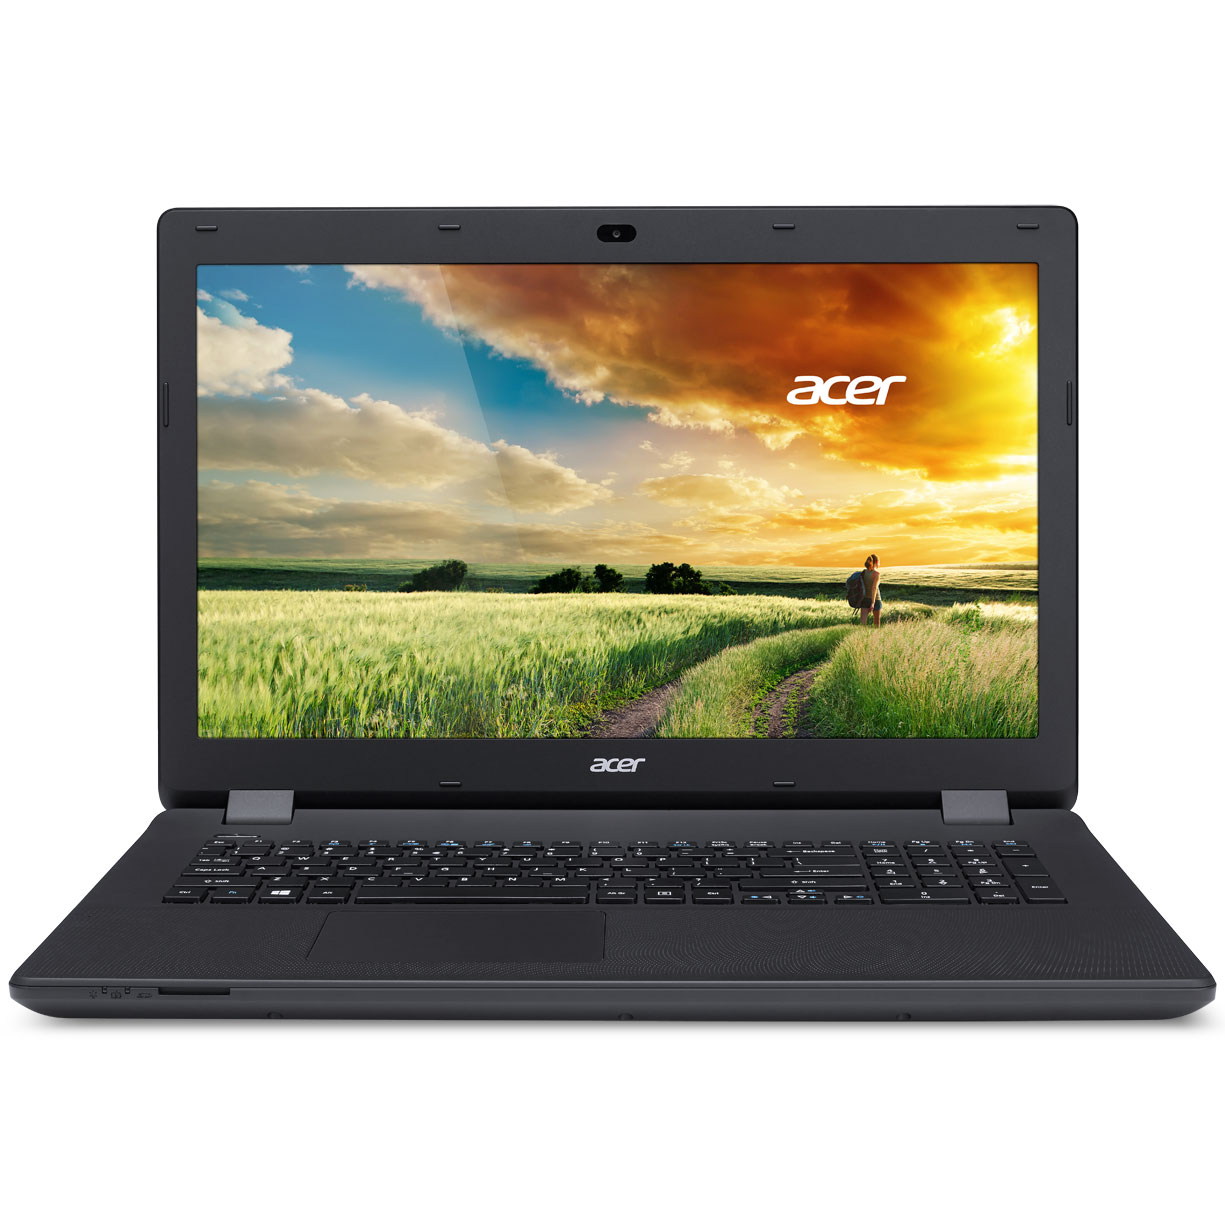 acer aspire es1 731 c6ek pc portable acer sur. Black Bedroom Furniture Sets. Home Design Ideas